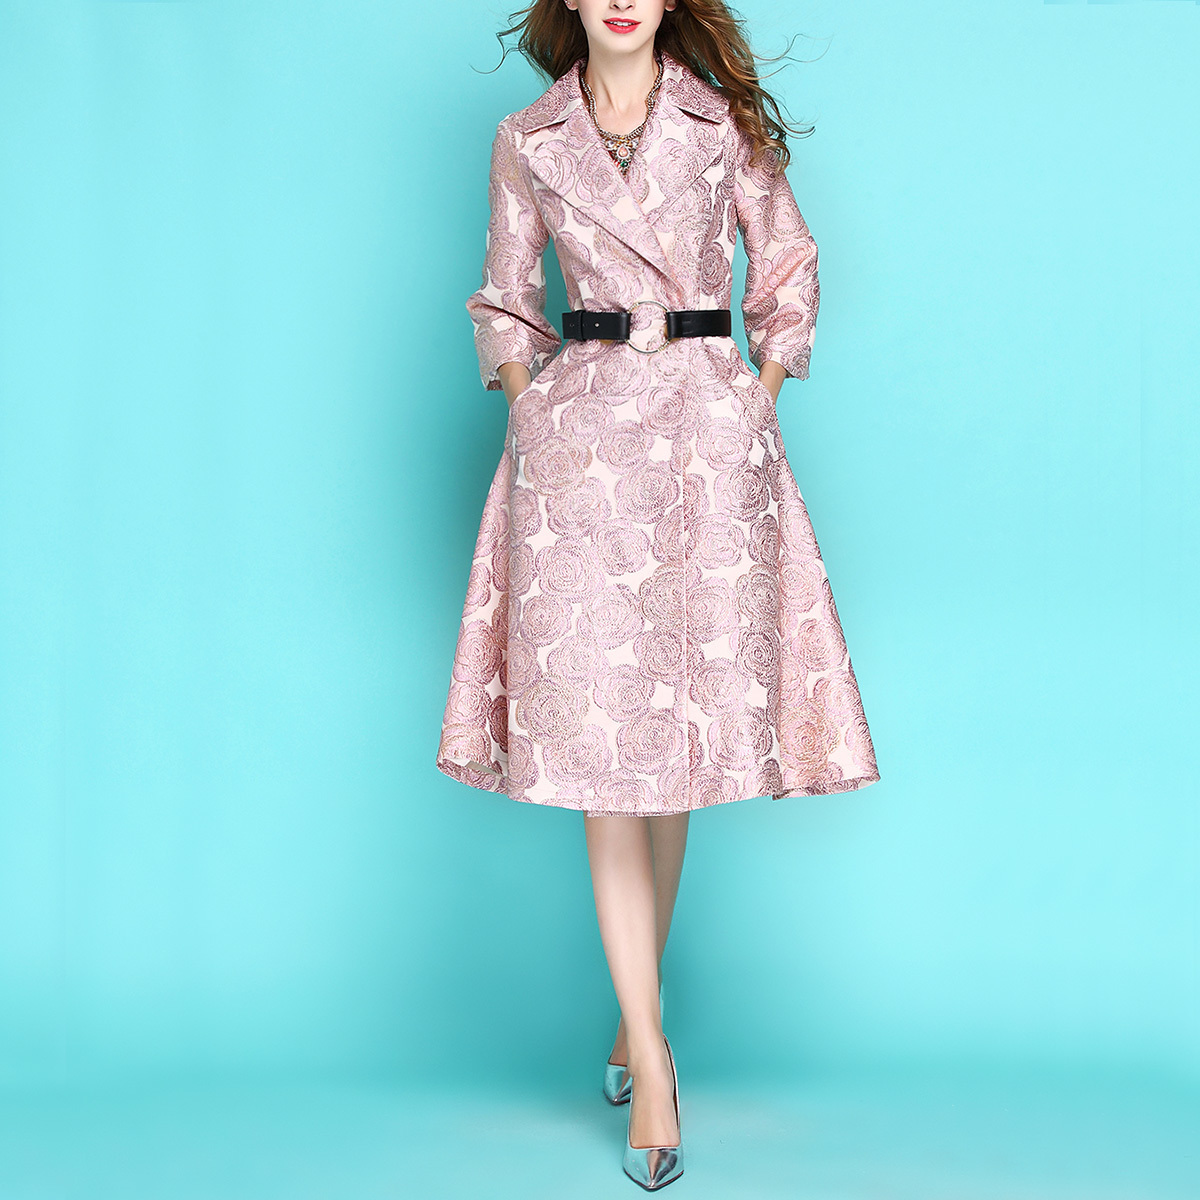 New Fashion Spring Autumn Women's Pink Jacquard Embroidery Luxury Windbreaker Long   Trench   Coat 3/4 Sleeve Slim Outwear